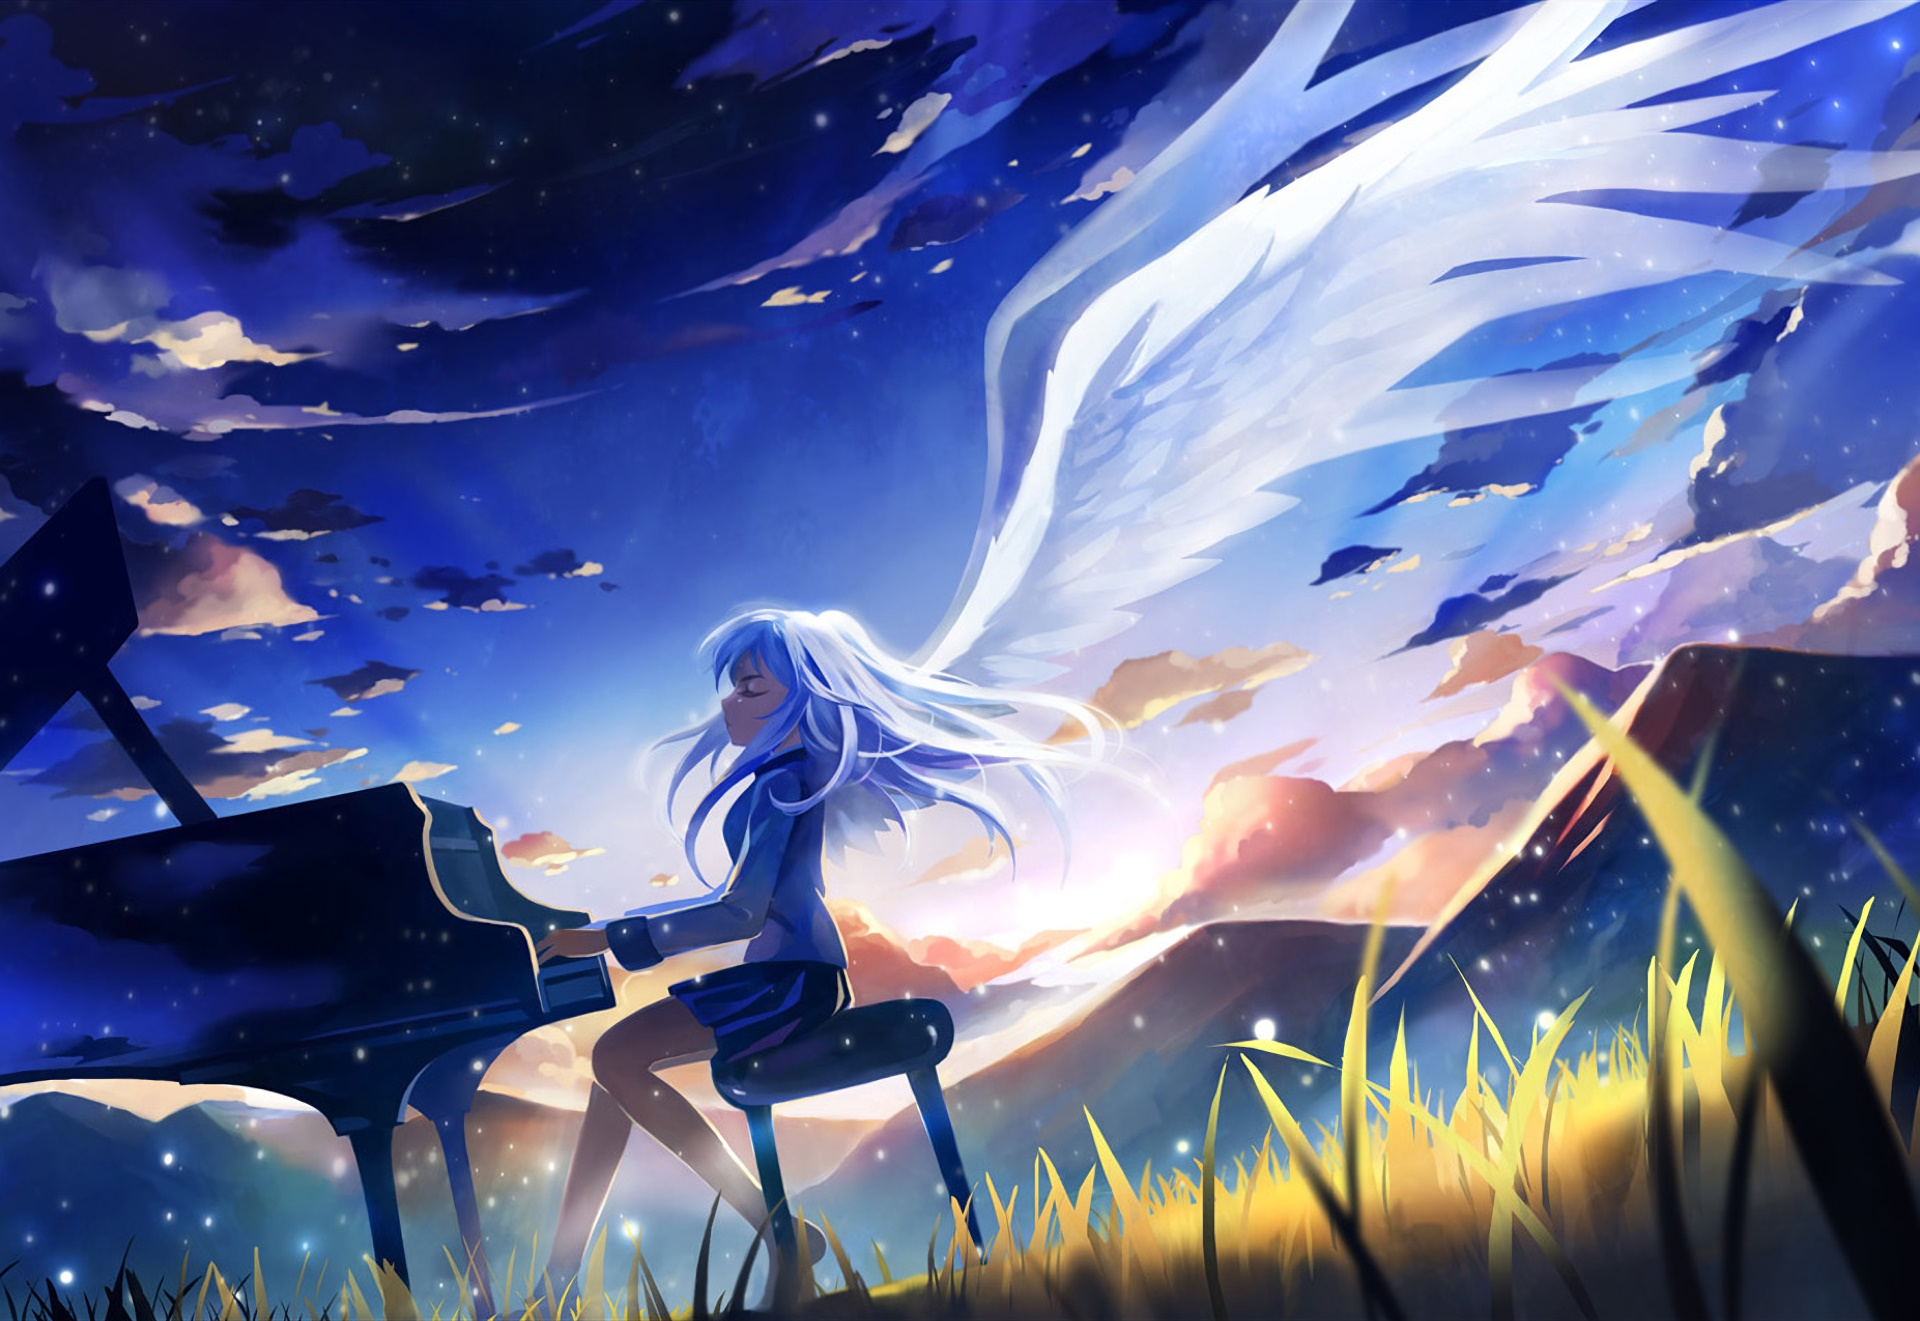 Angel Beats Wallpaper – wallpapers to Spruce Up Your Laptop